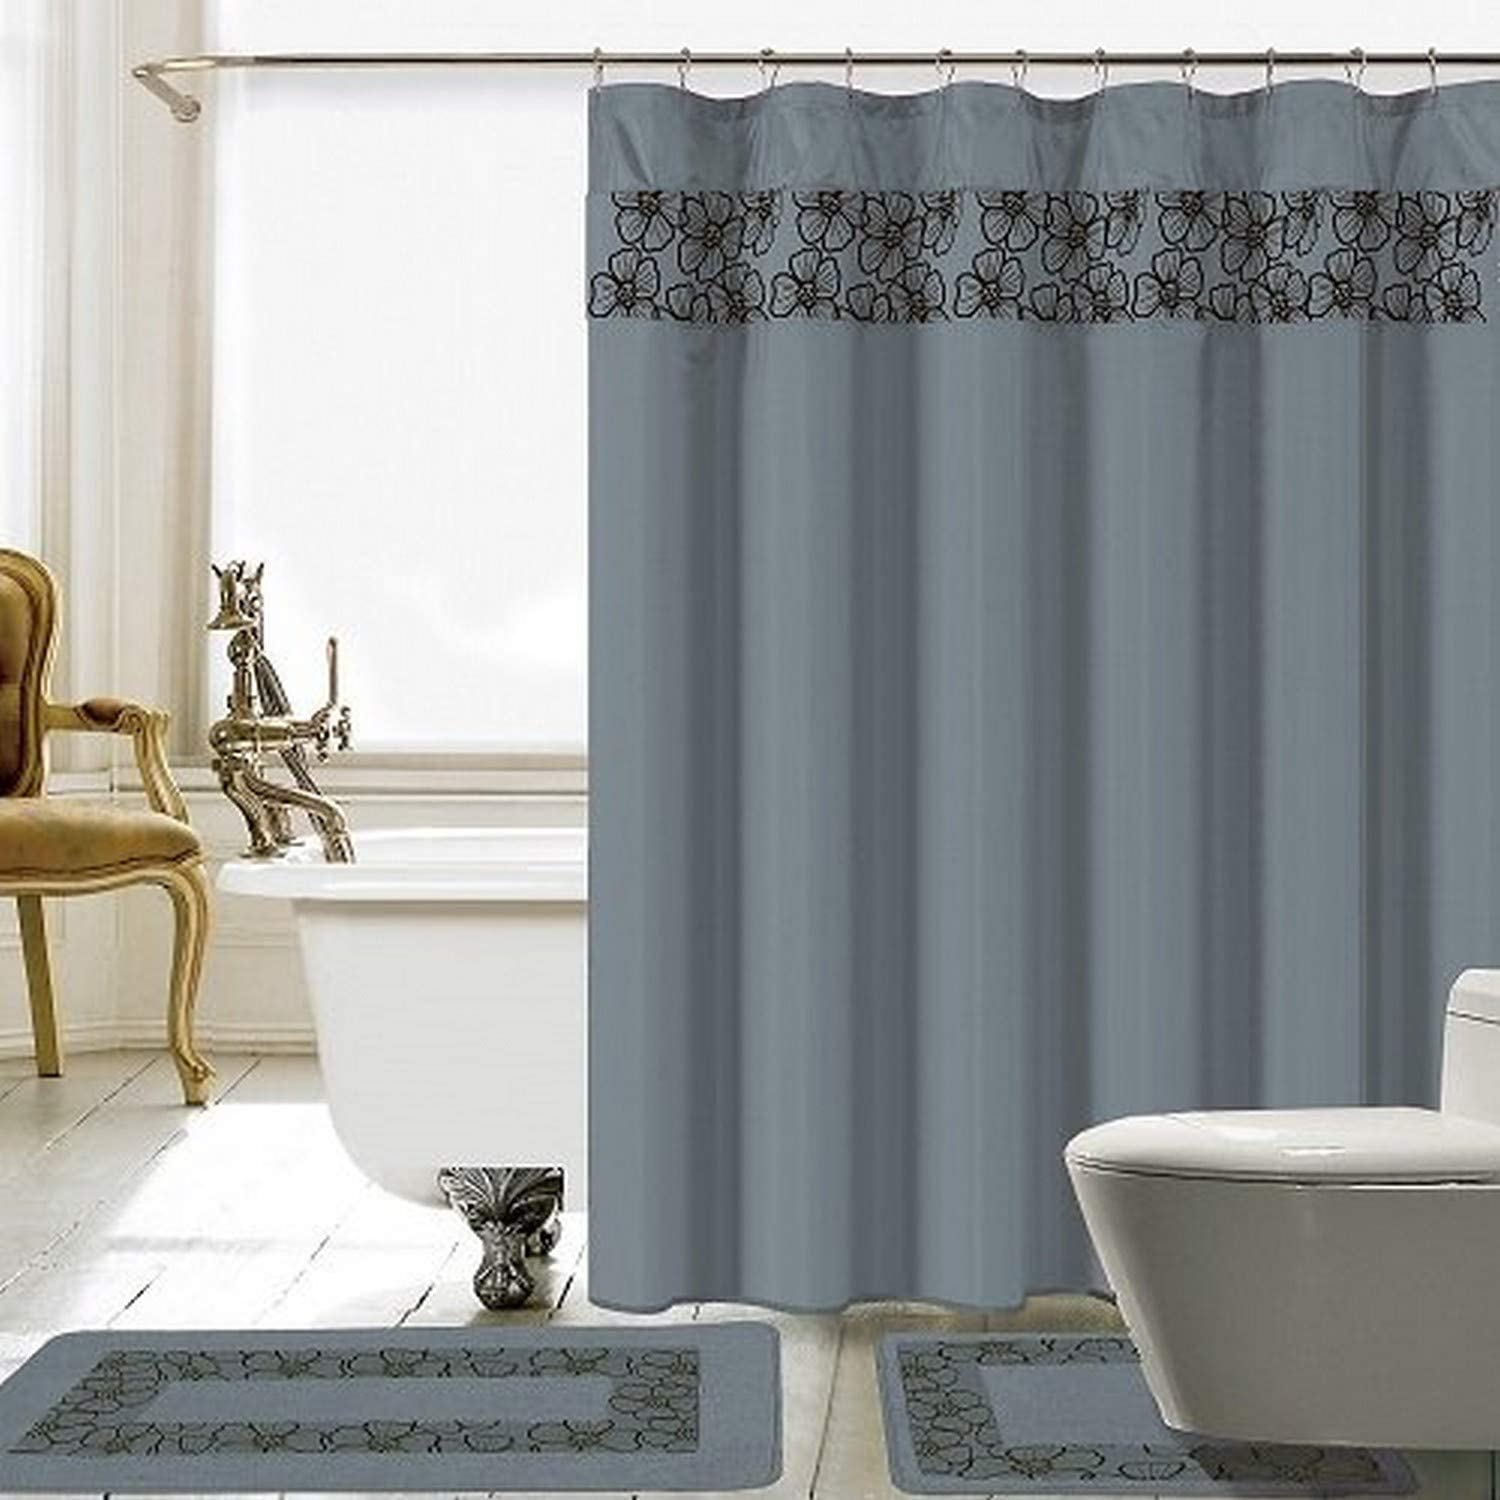 Navy Blue 18 Piece Lilian Embroidery Banded Shower Curtain Bath Set